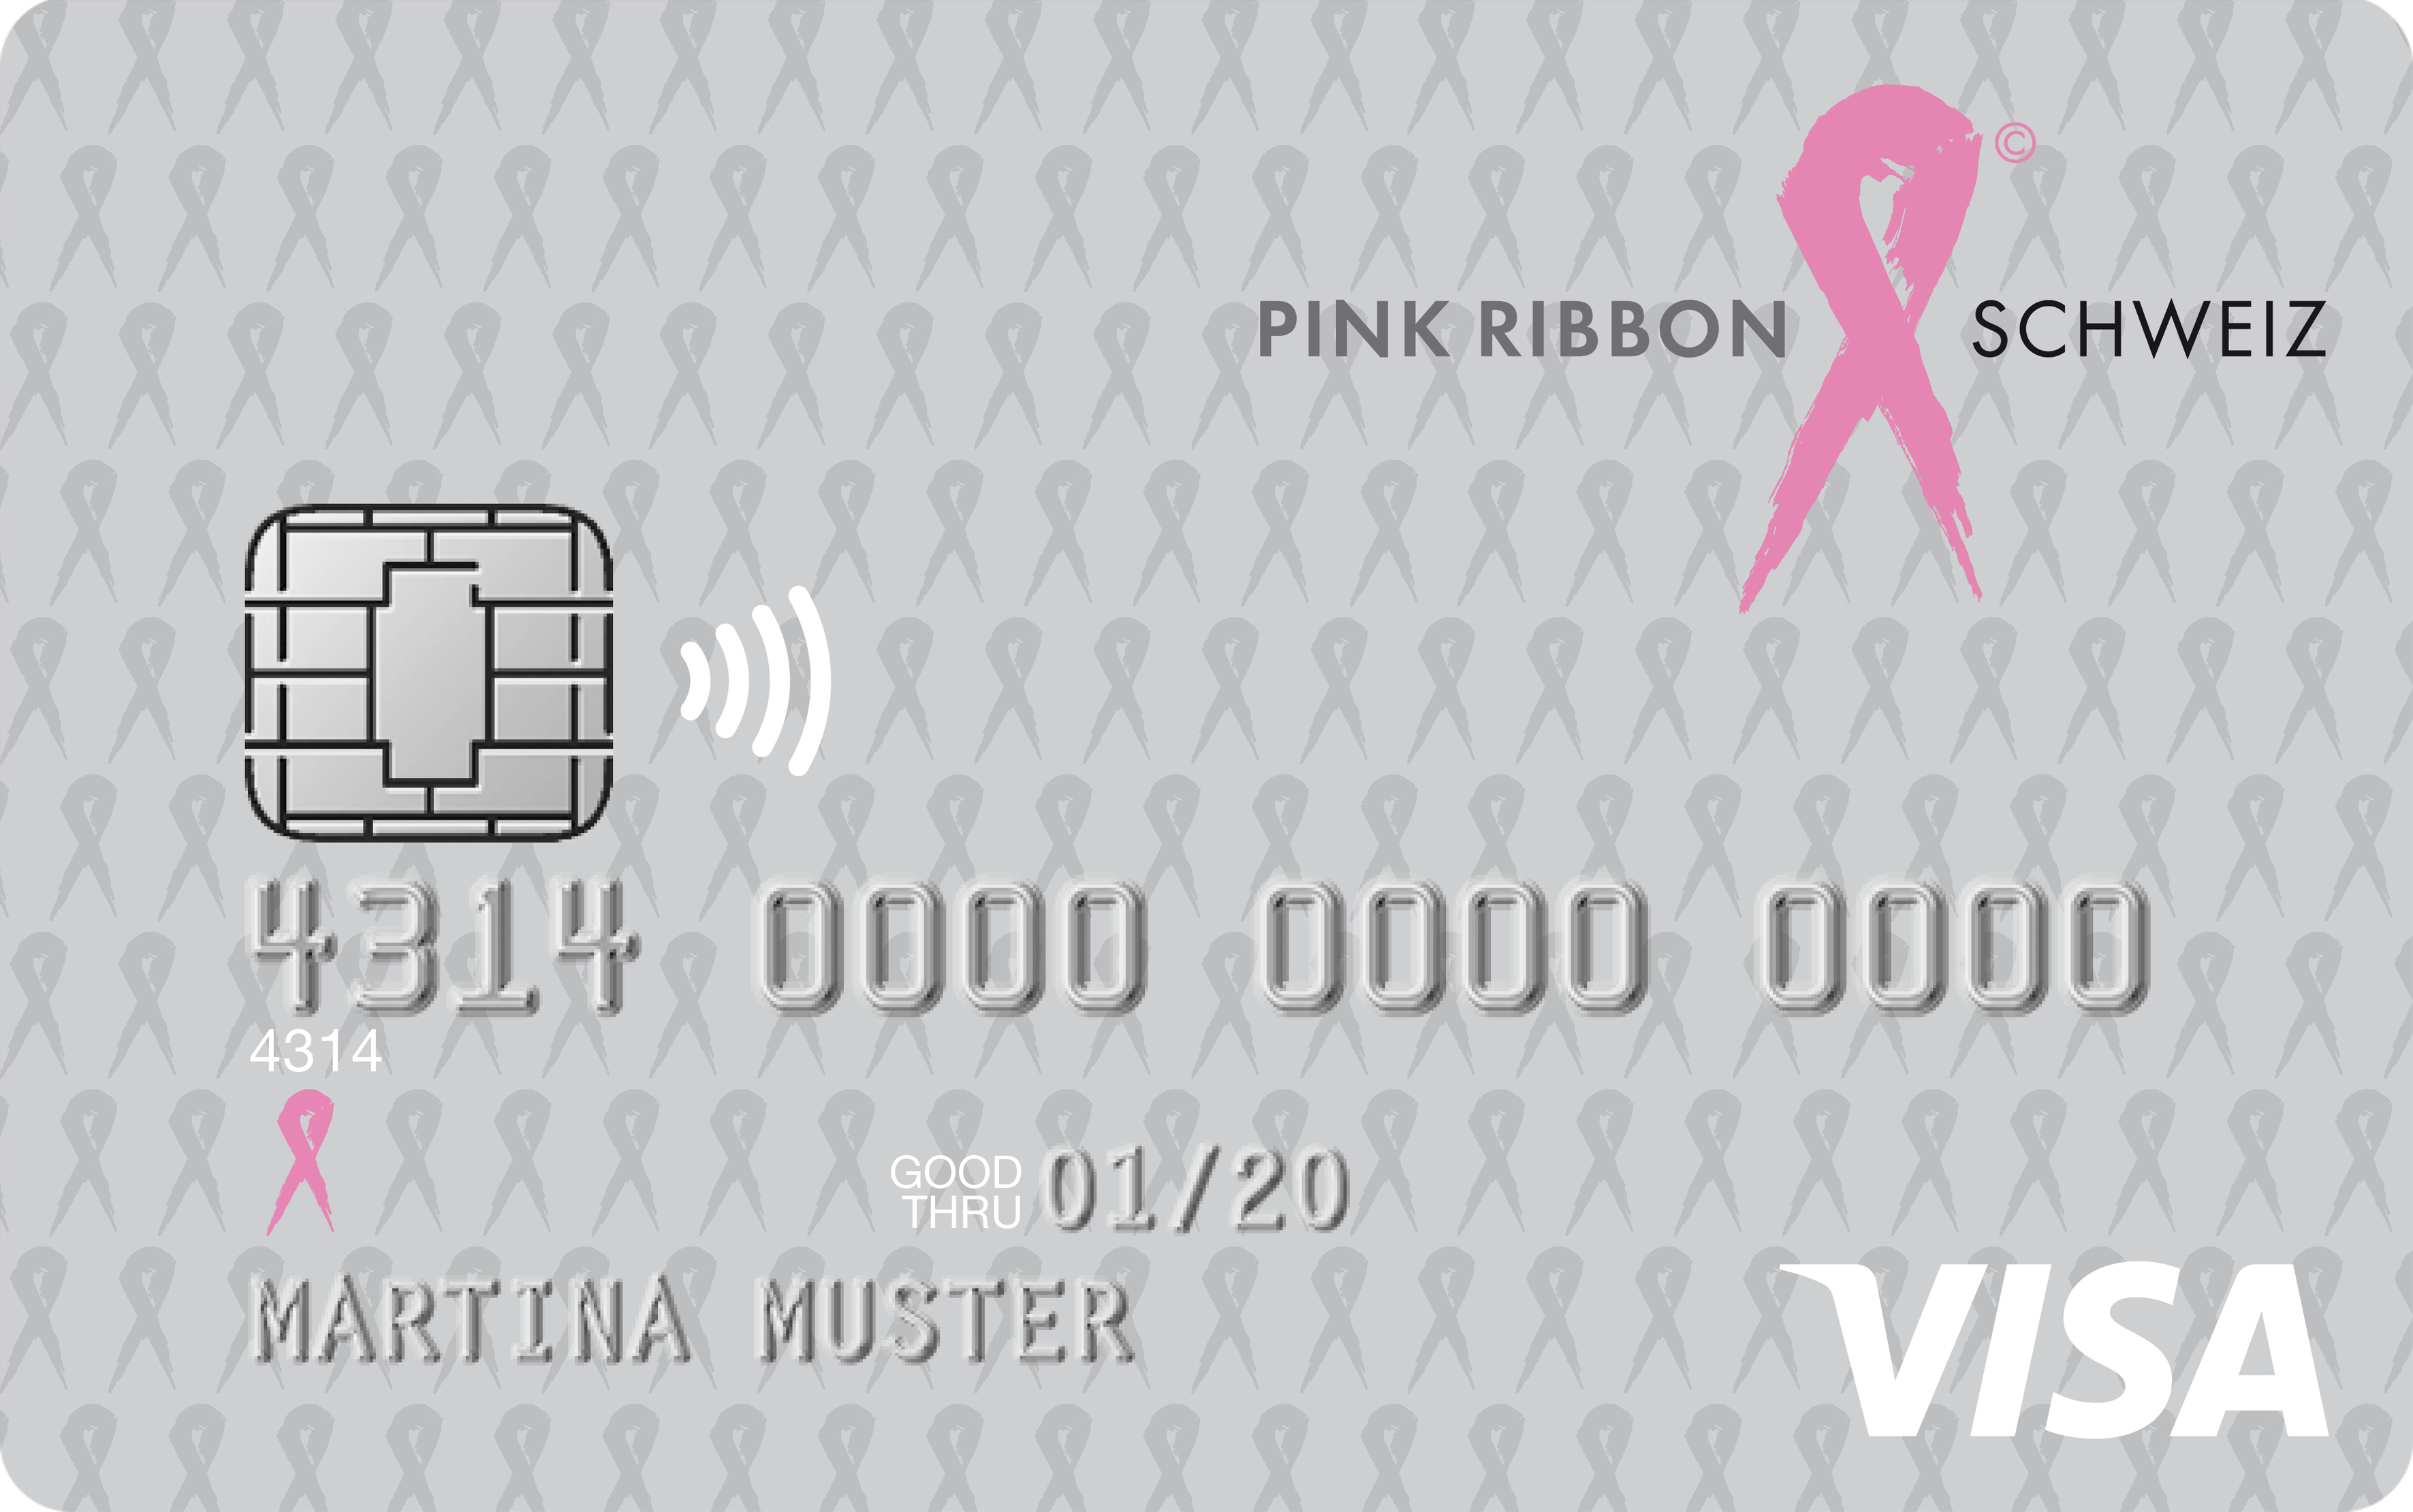 PINK RIBBON Visa Bonus Card